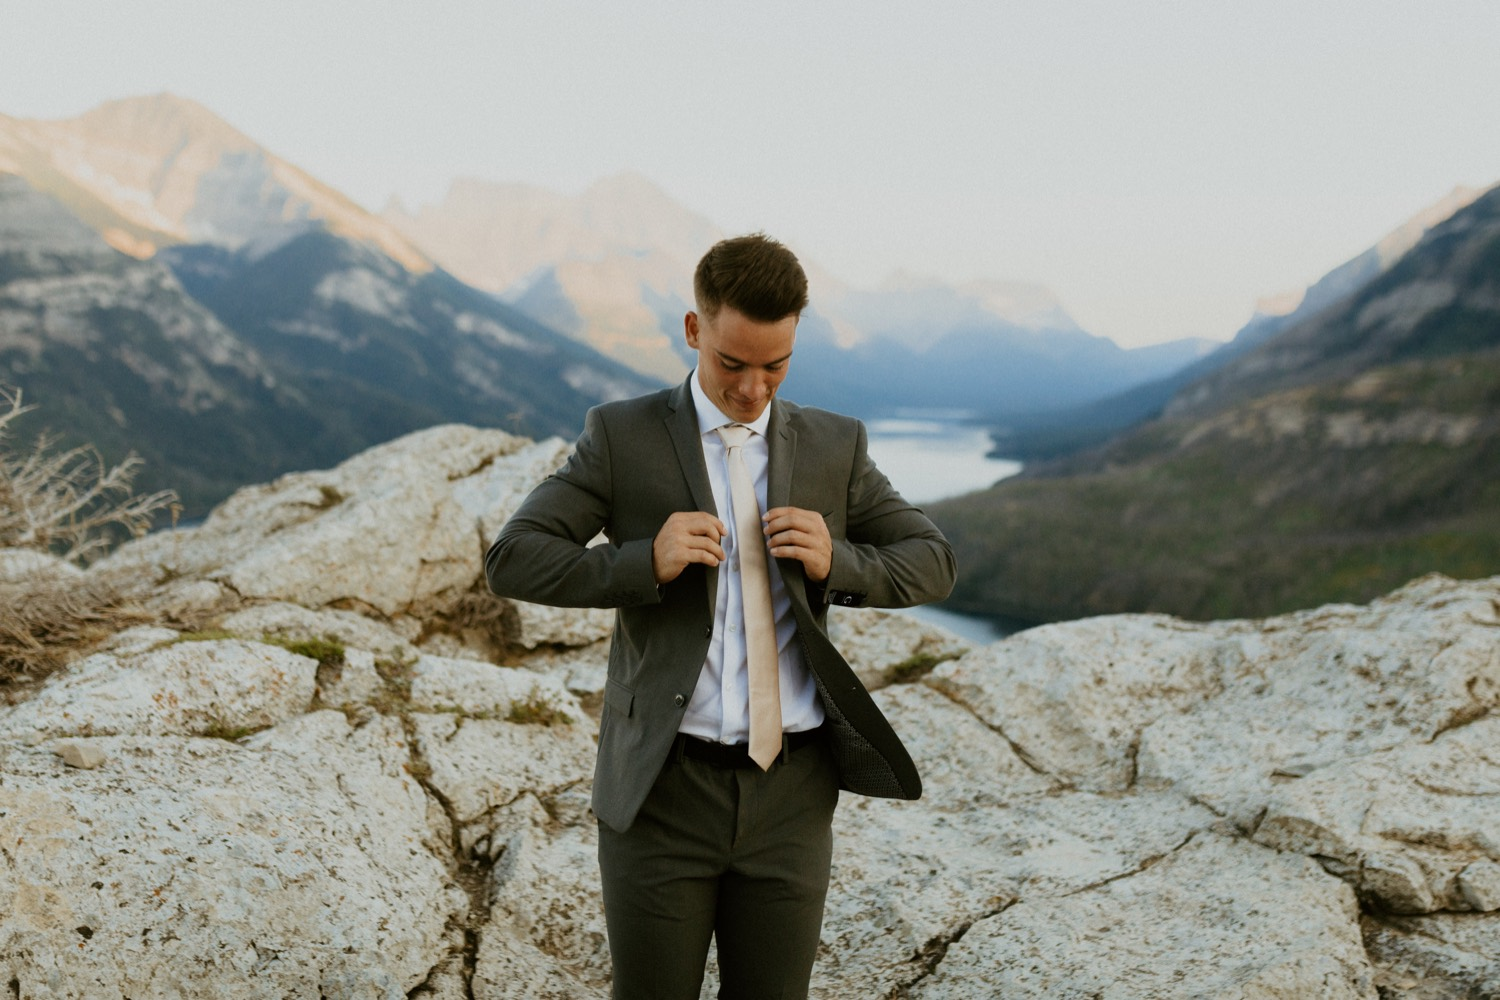 Waterton Wedding Adventurous Mountain Elopement style in the beautiful Canadian Rocky Mountains groom fixing his tie on the mountain top